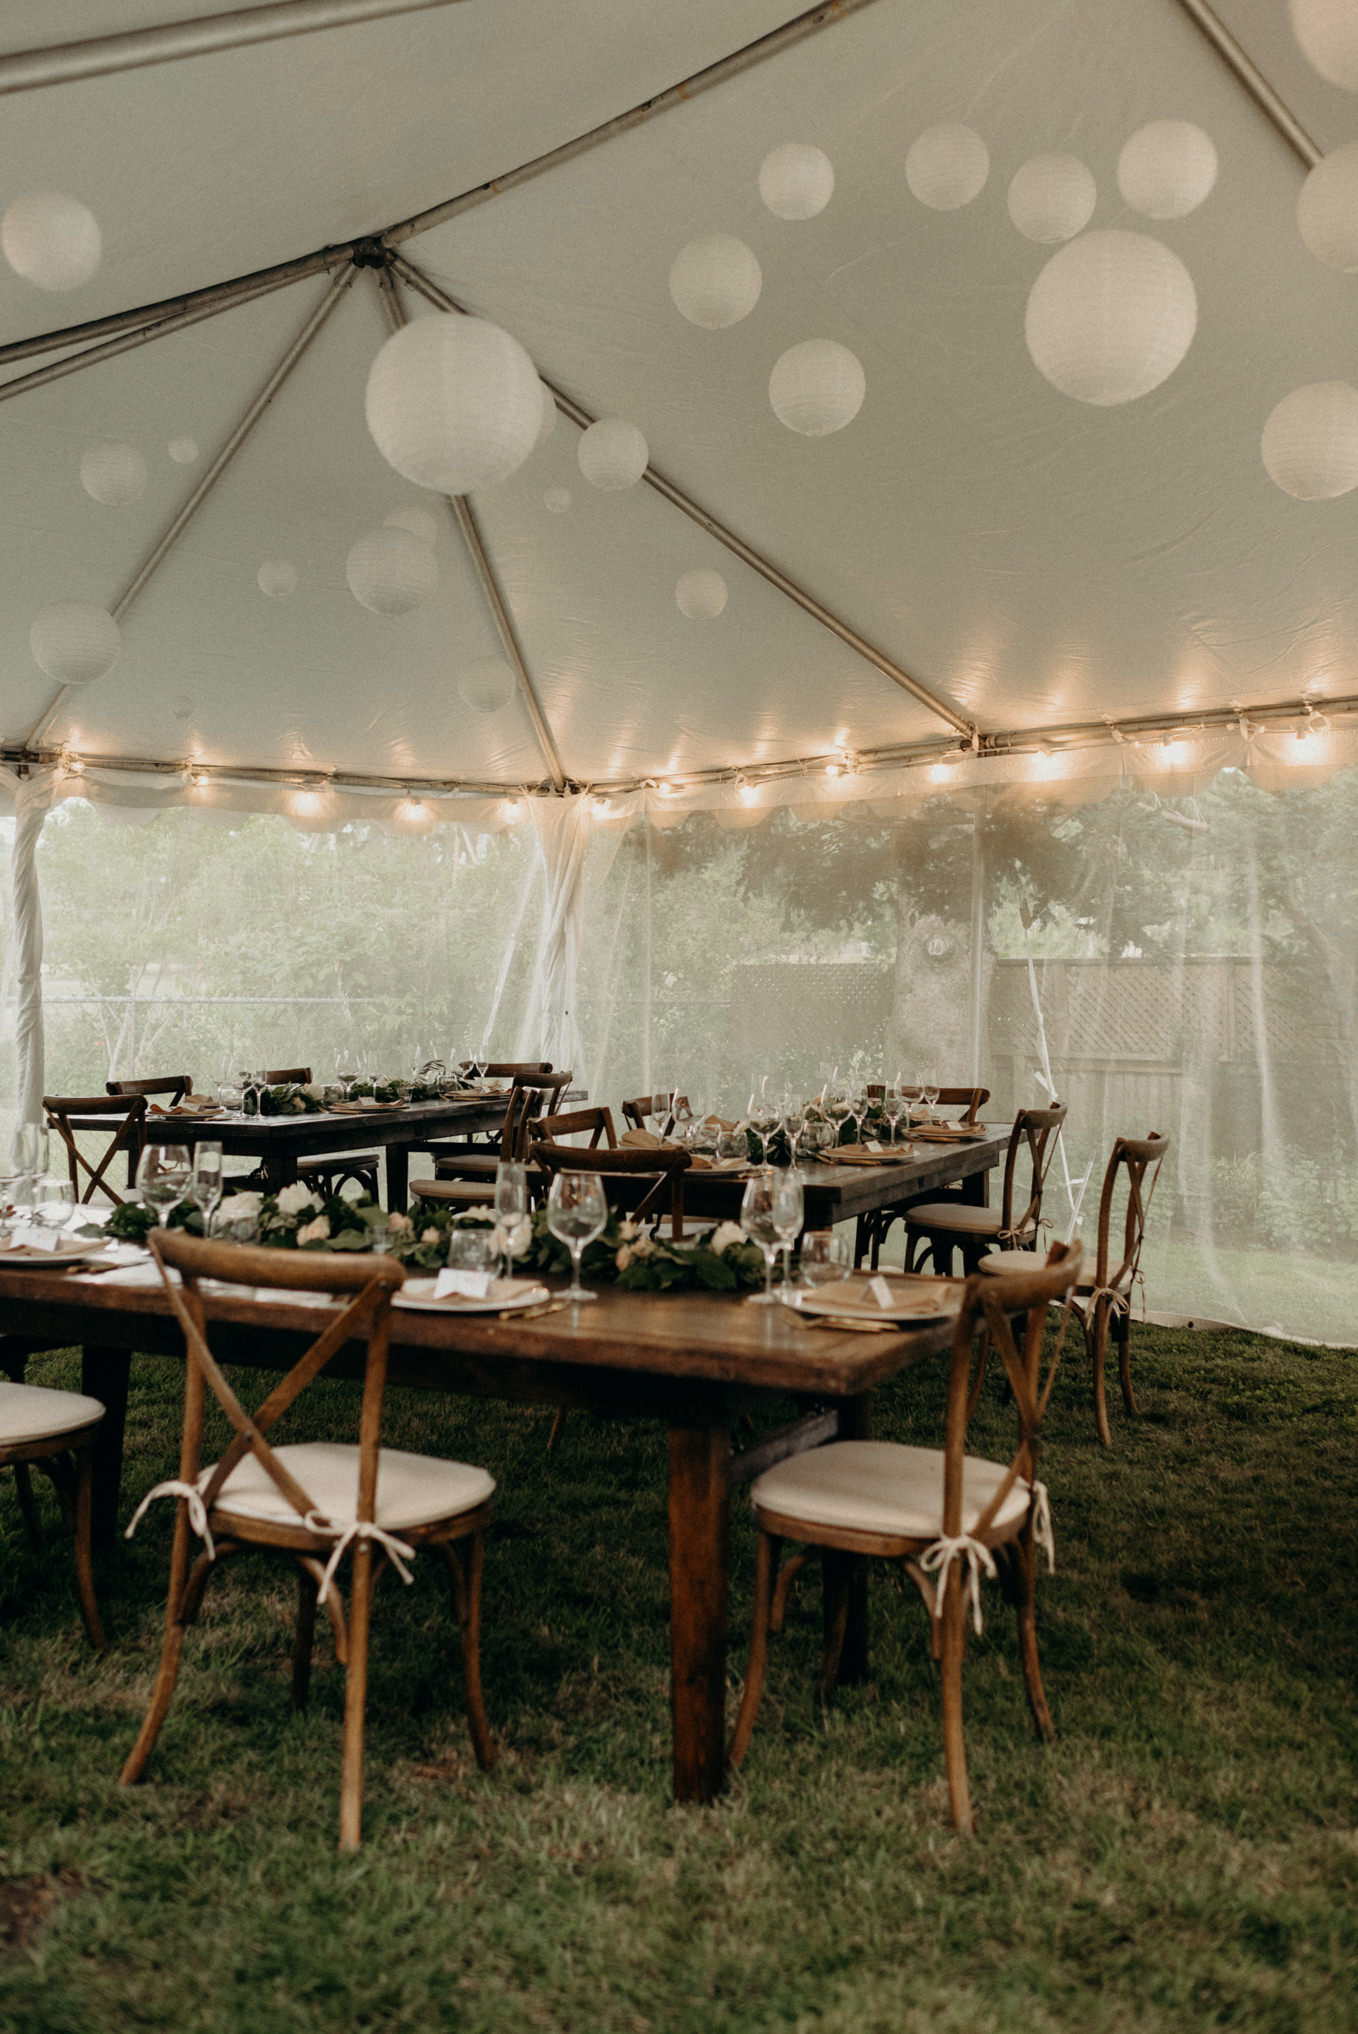 pandemic backyard wedding in a tent